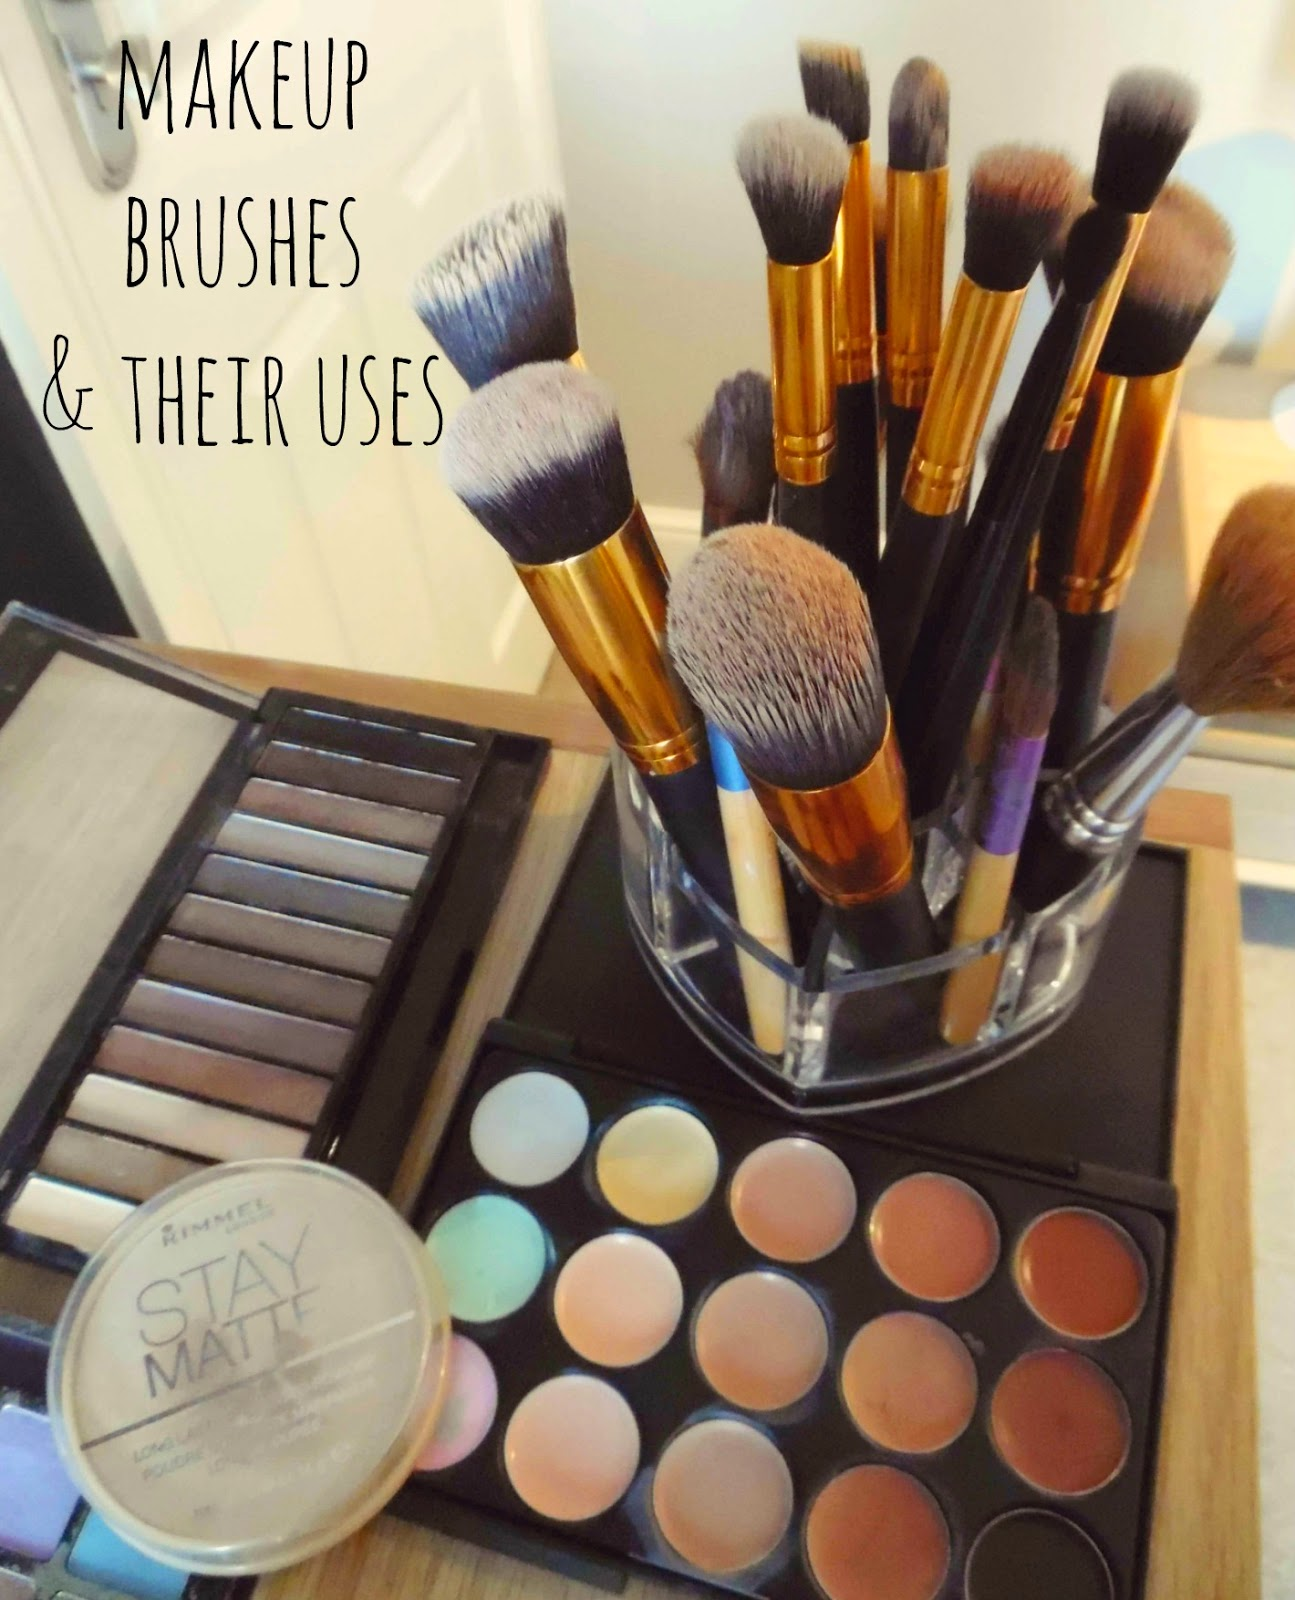 Makeup brushes and their uses